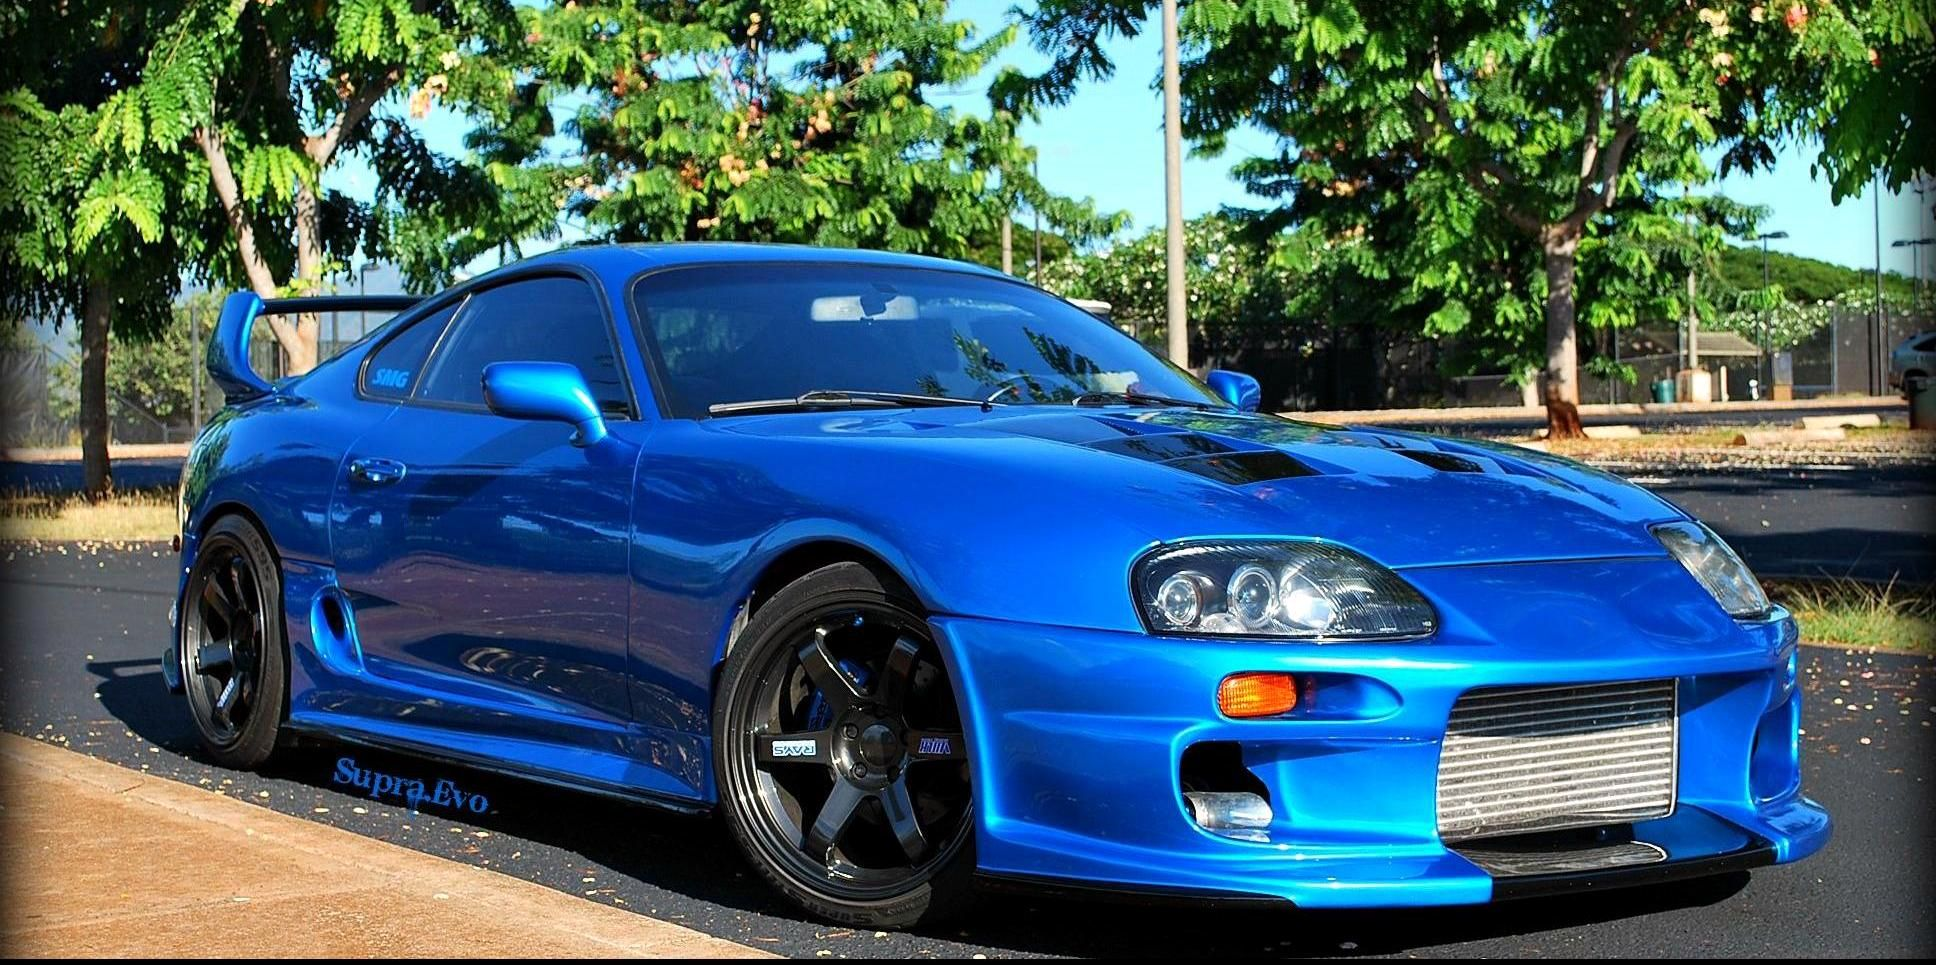 toyota supra rz jza80 fast cars pinterest toyota supra rz toyota supra and toyota. Black Bedroom Furniture Sets. Home Design Ideas